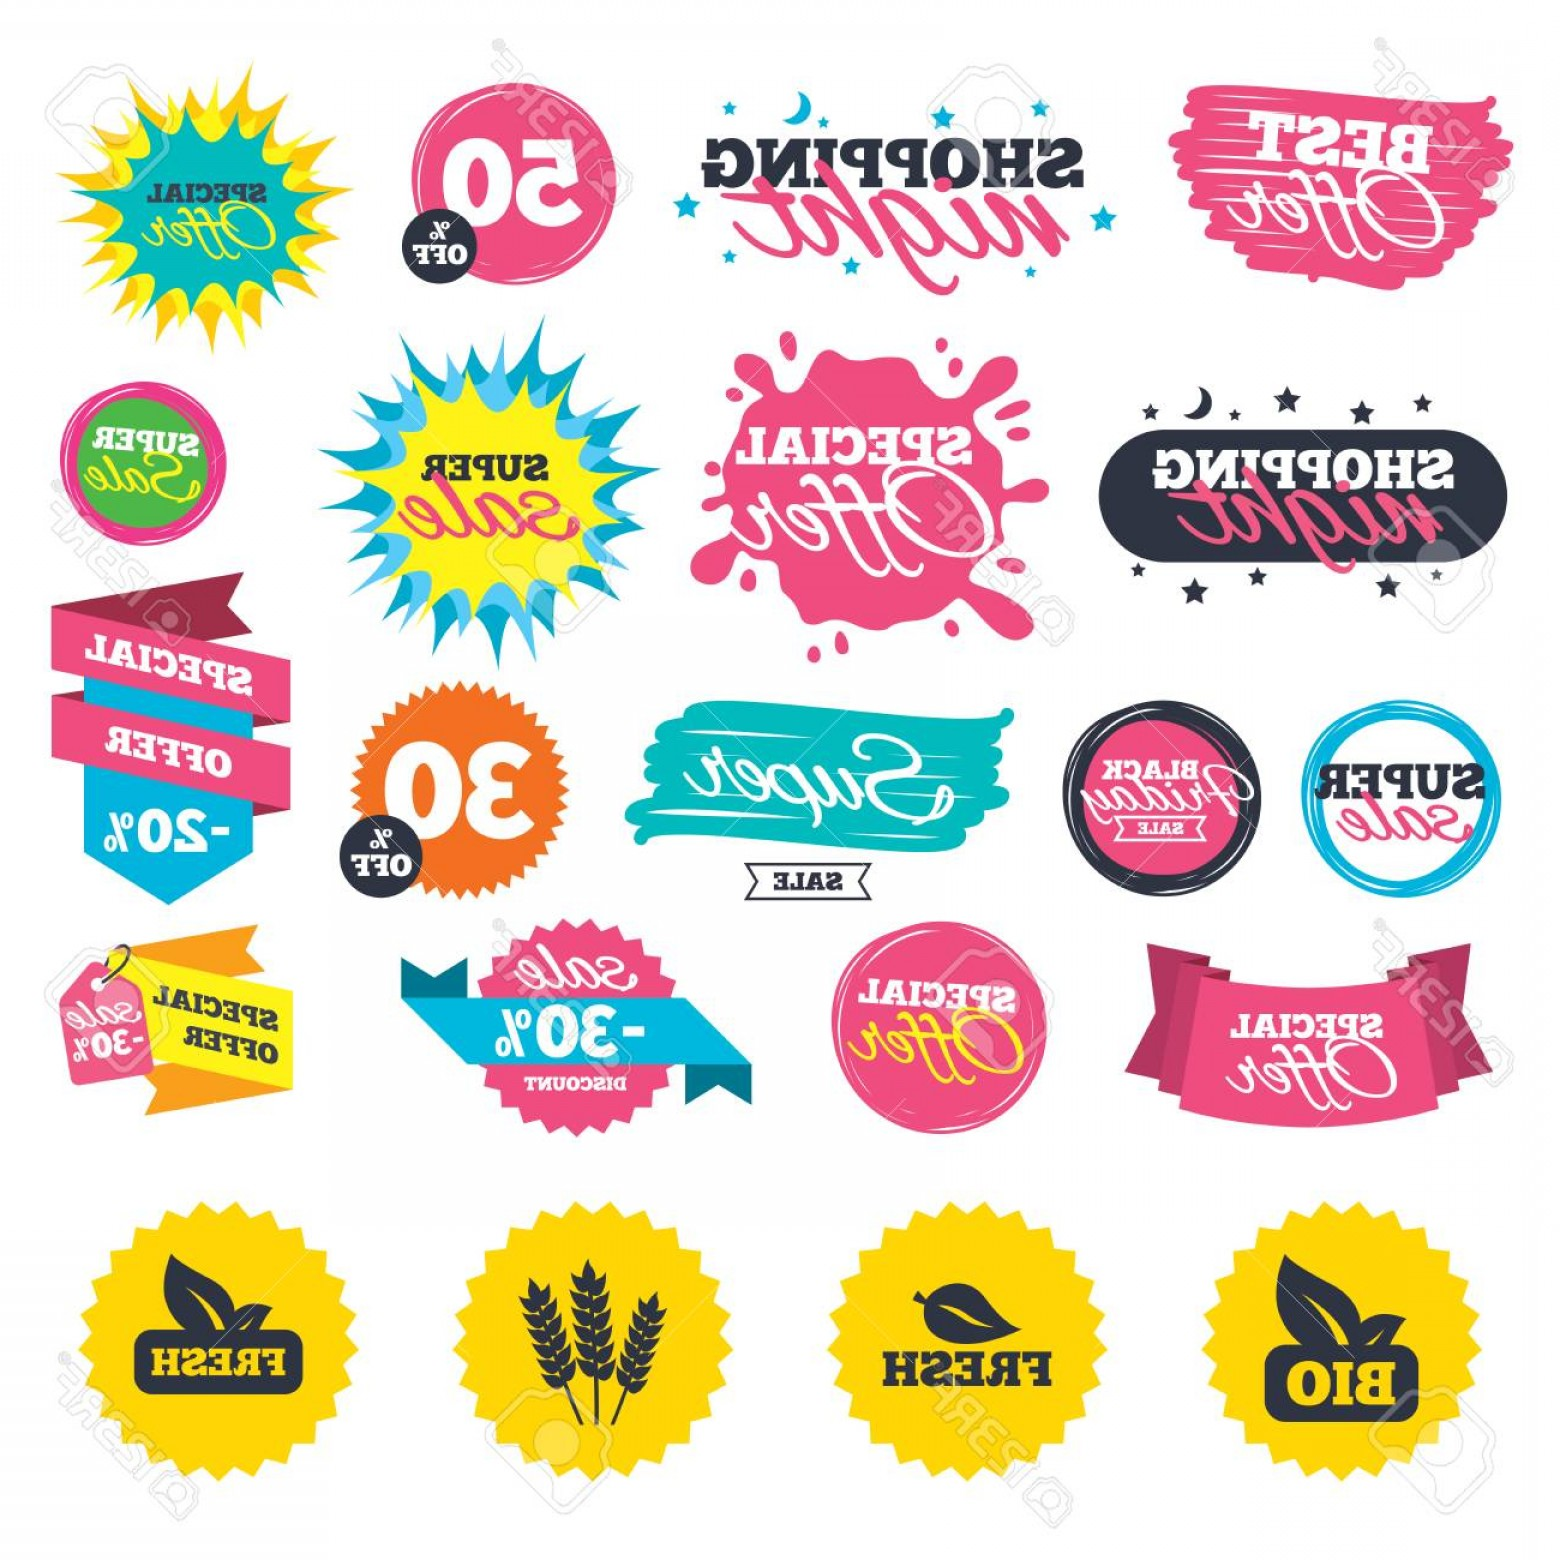 Food Vectors 50 S: Photostock Vector Sale Shopping Banners Natural Fresh Bio Food Icons Gluten Free Agricultural Sign Symbol Web Badges S